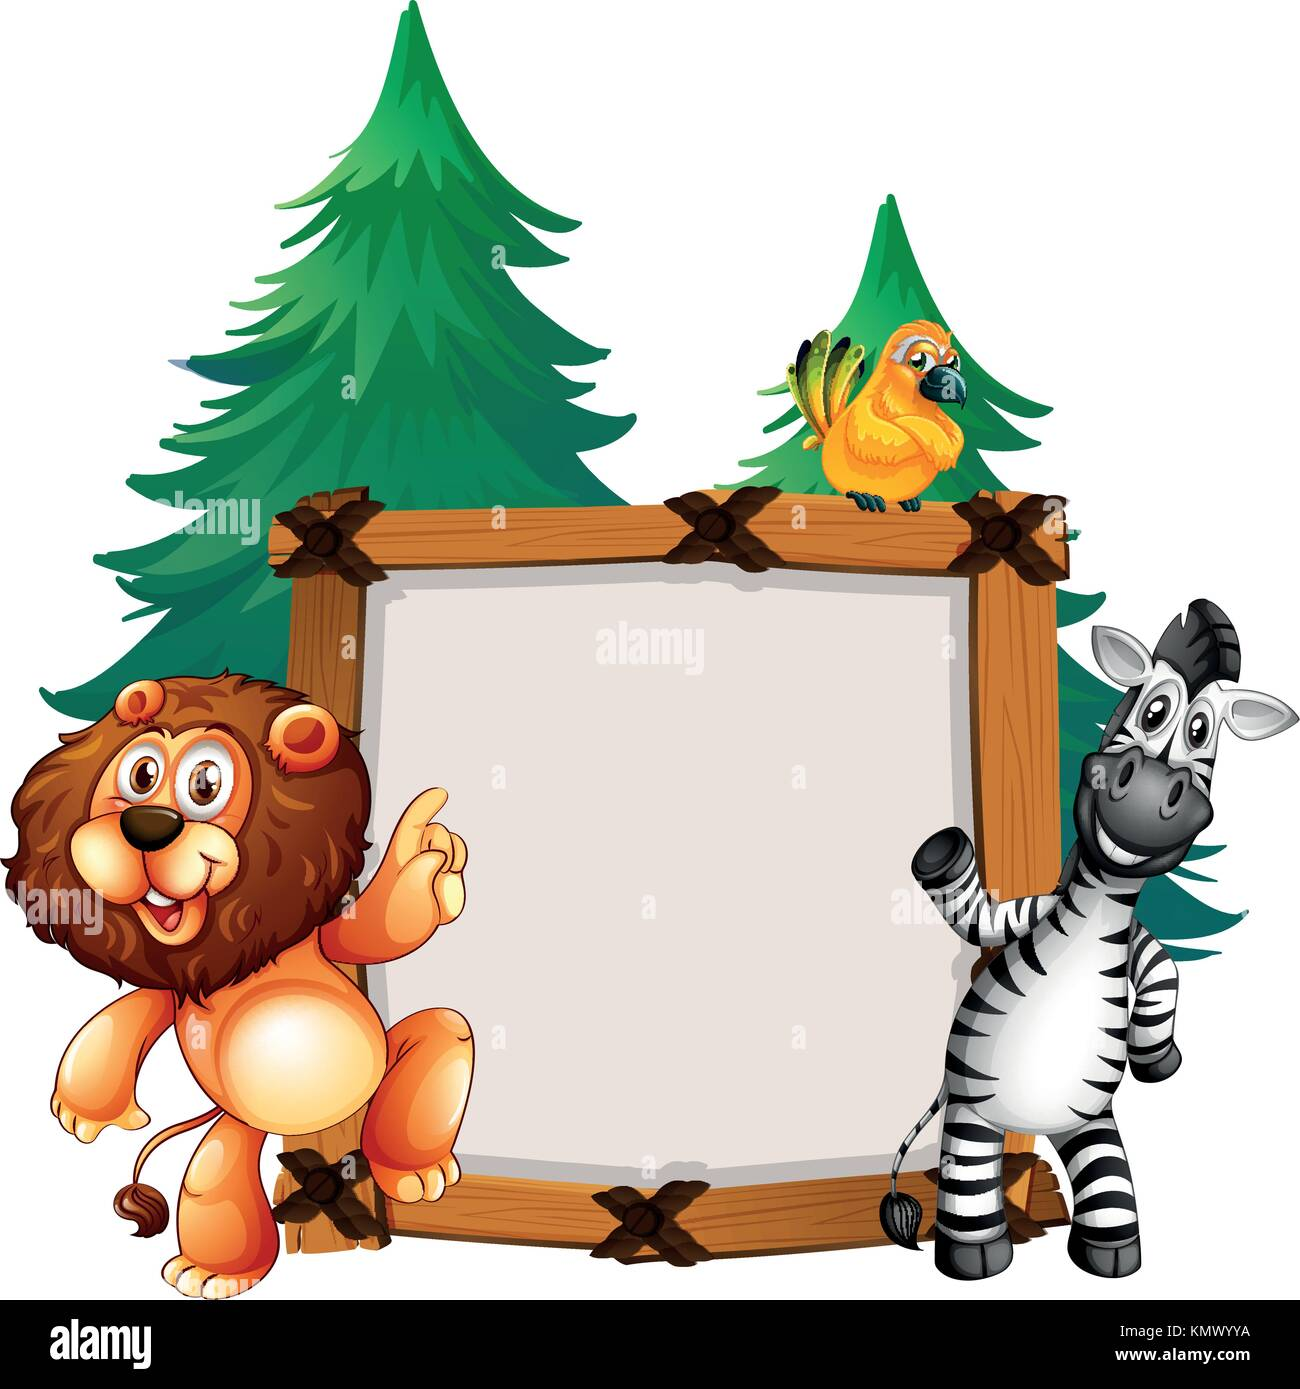 Clipart Lion Stockfotos & Clipart Lion Bilder - Seite 5 - Alamy